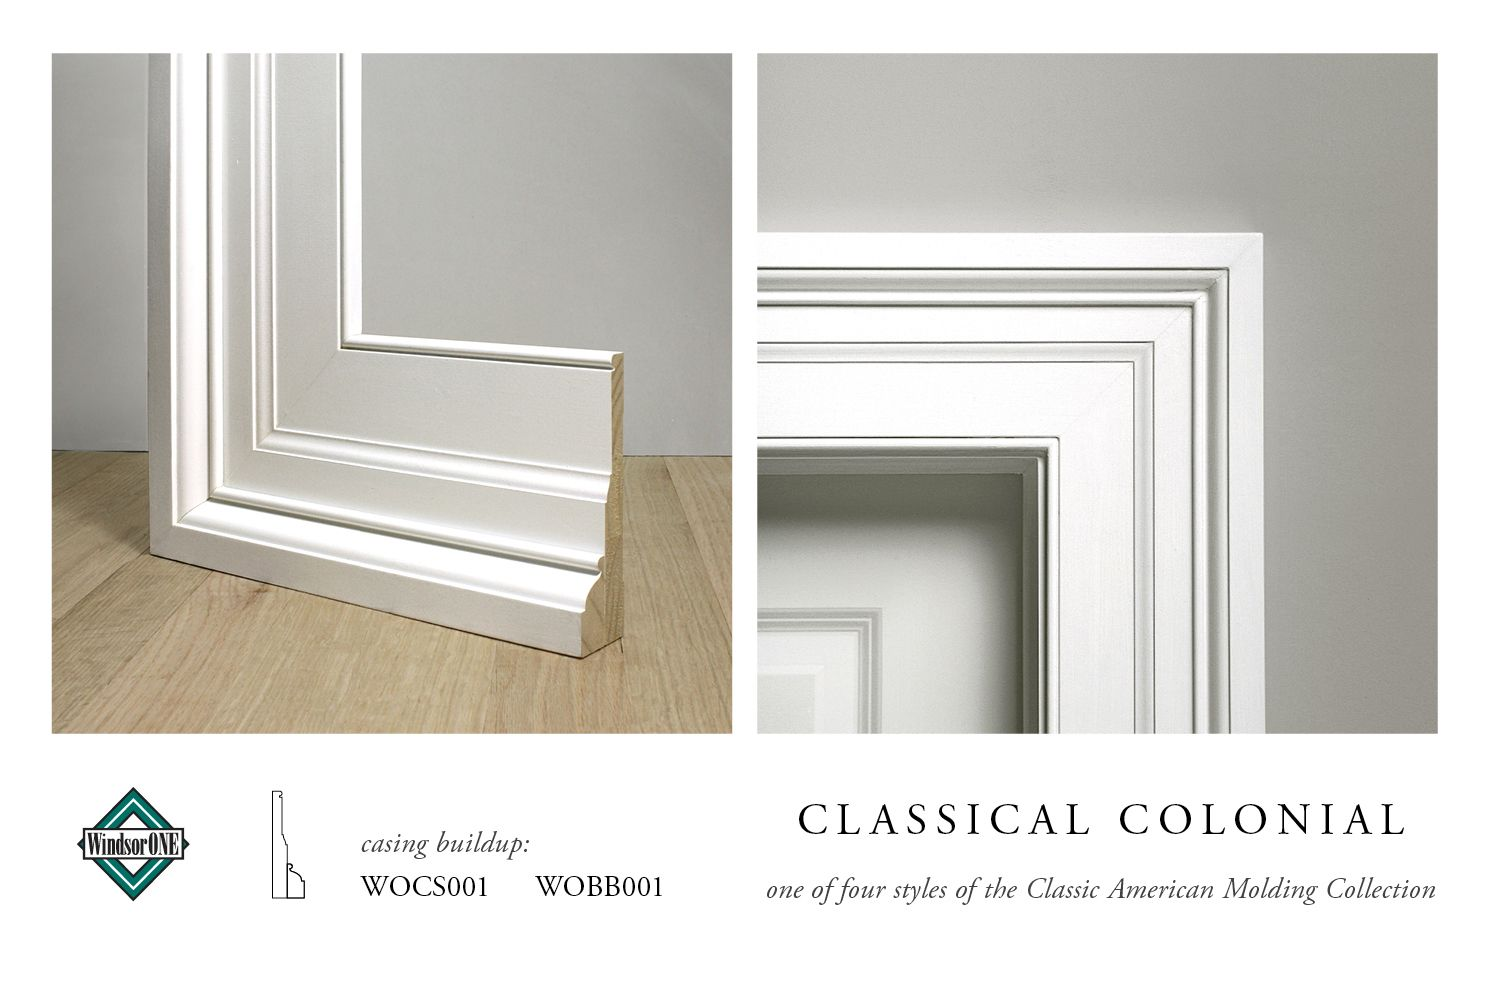 Classical Colonial Moldings, 18th century style